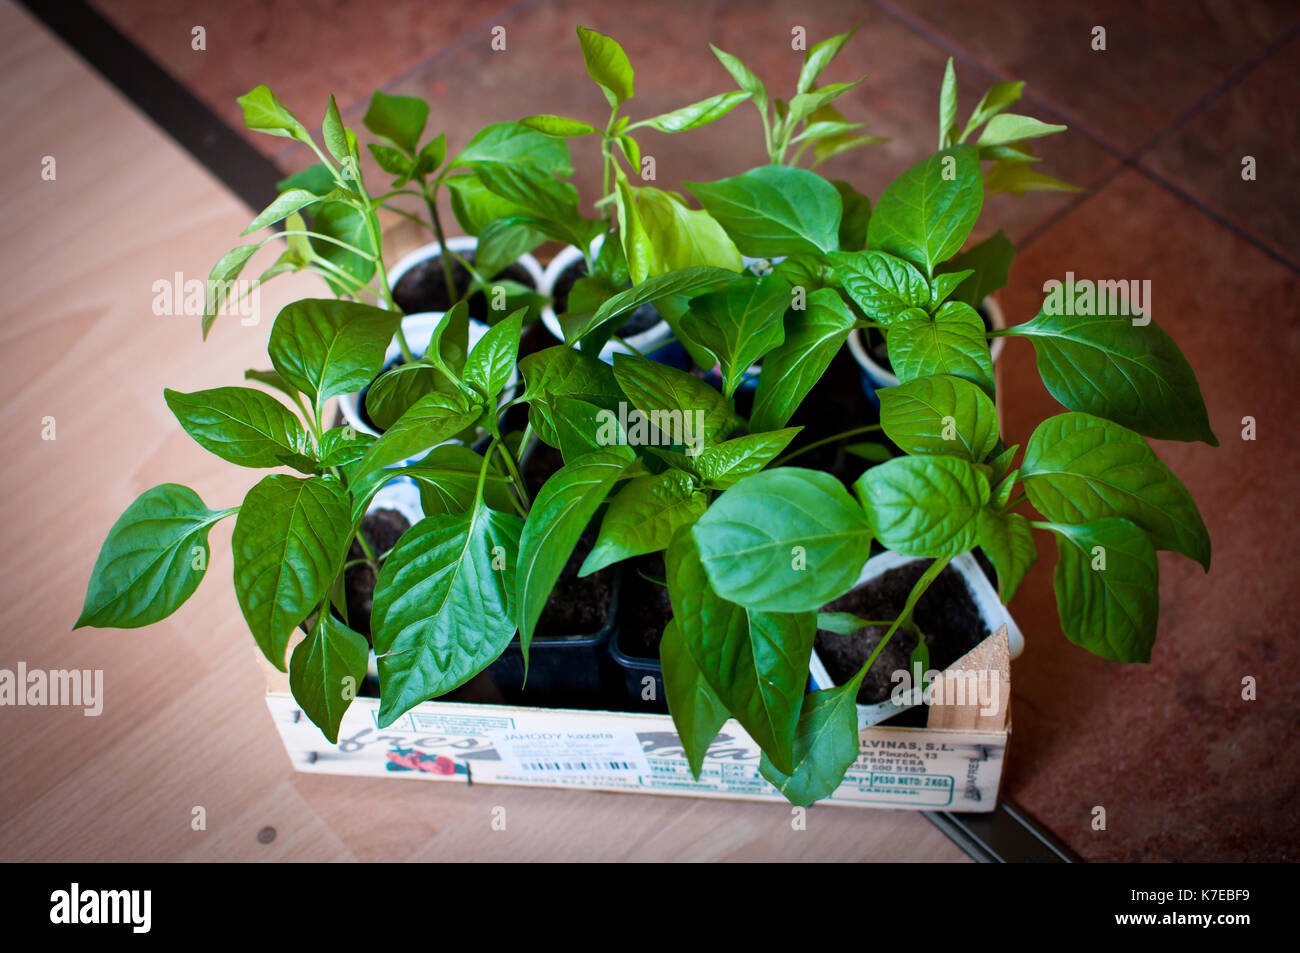 herbs and vegetable plantes grown up in my garden - Stock Image